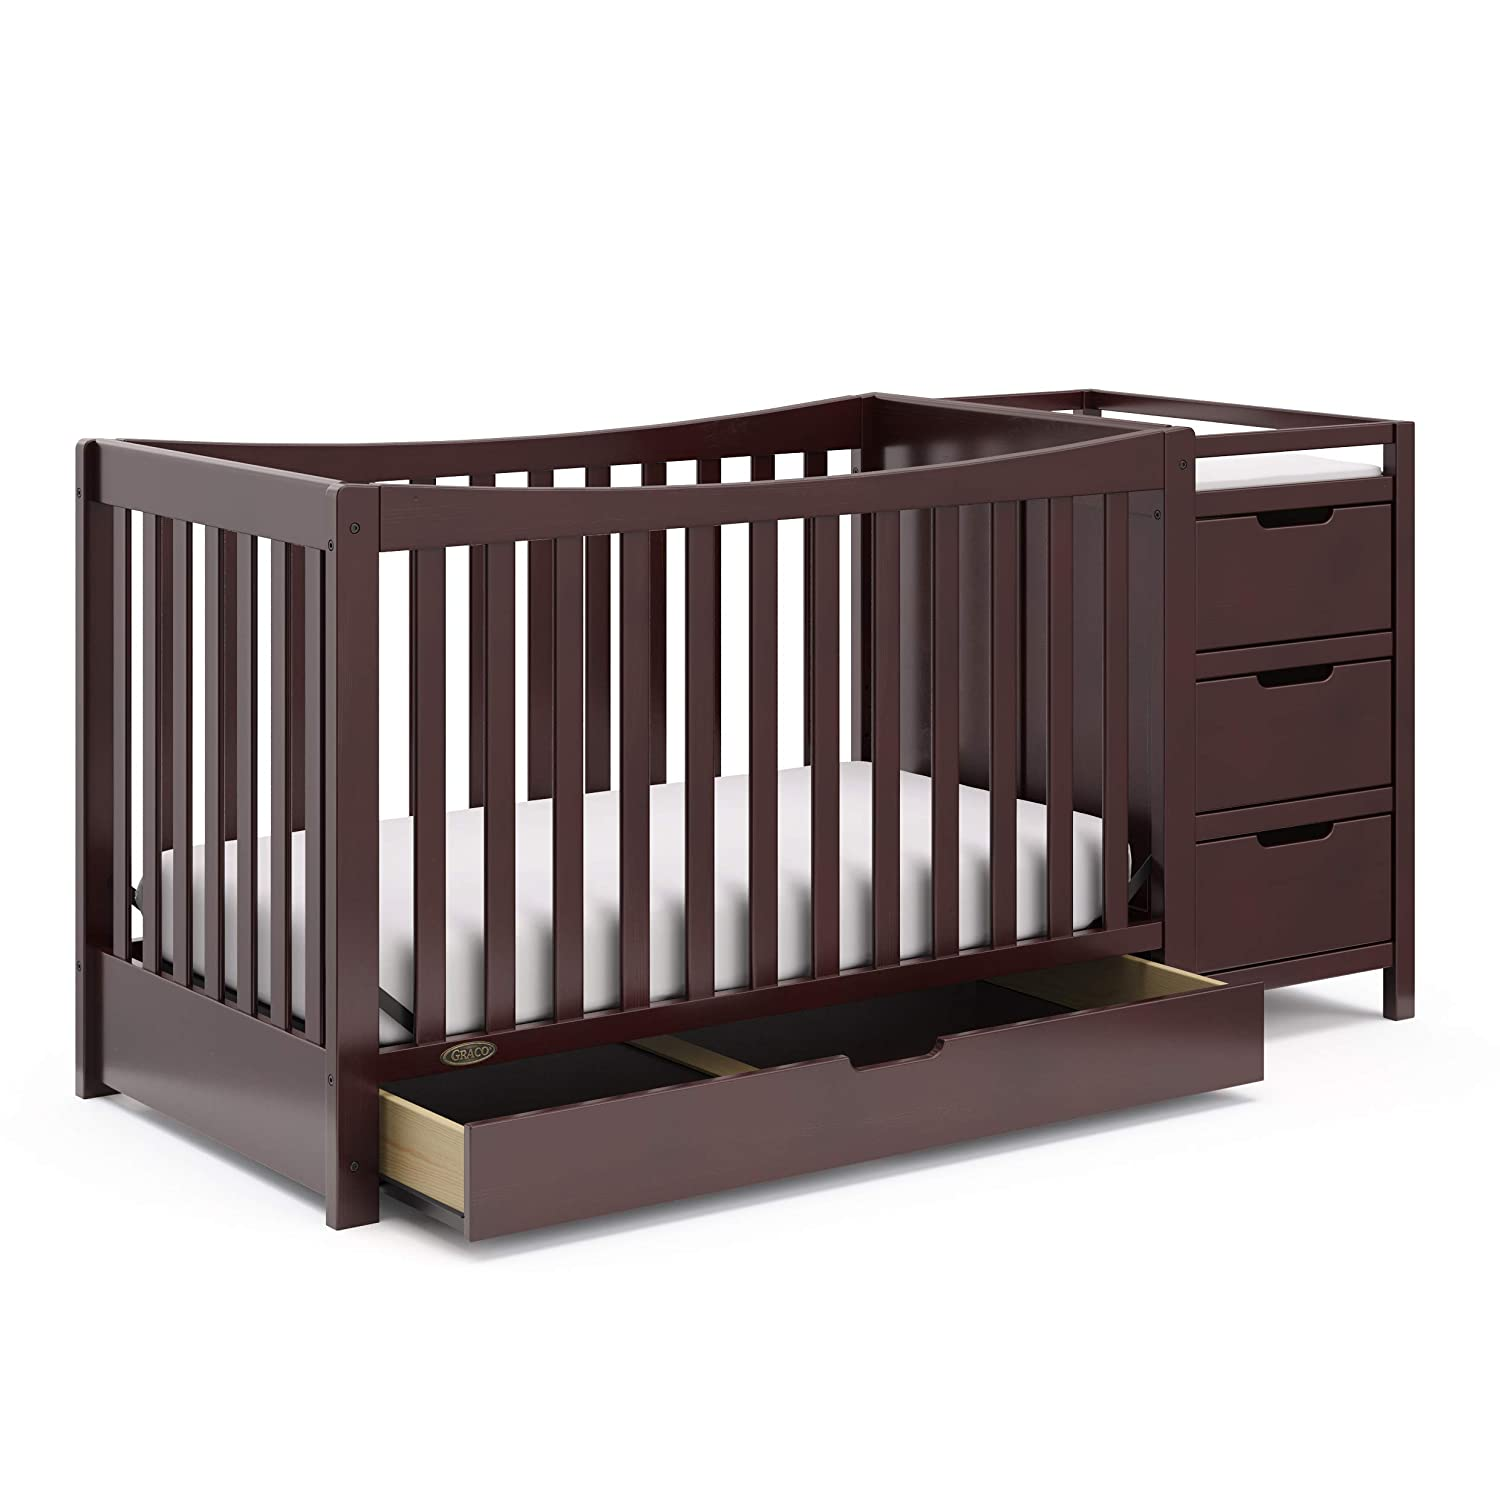 Graco Remi 4-in-1 Convertible Cribs With Changing Table